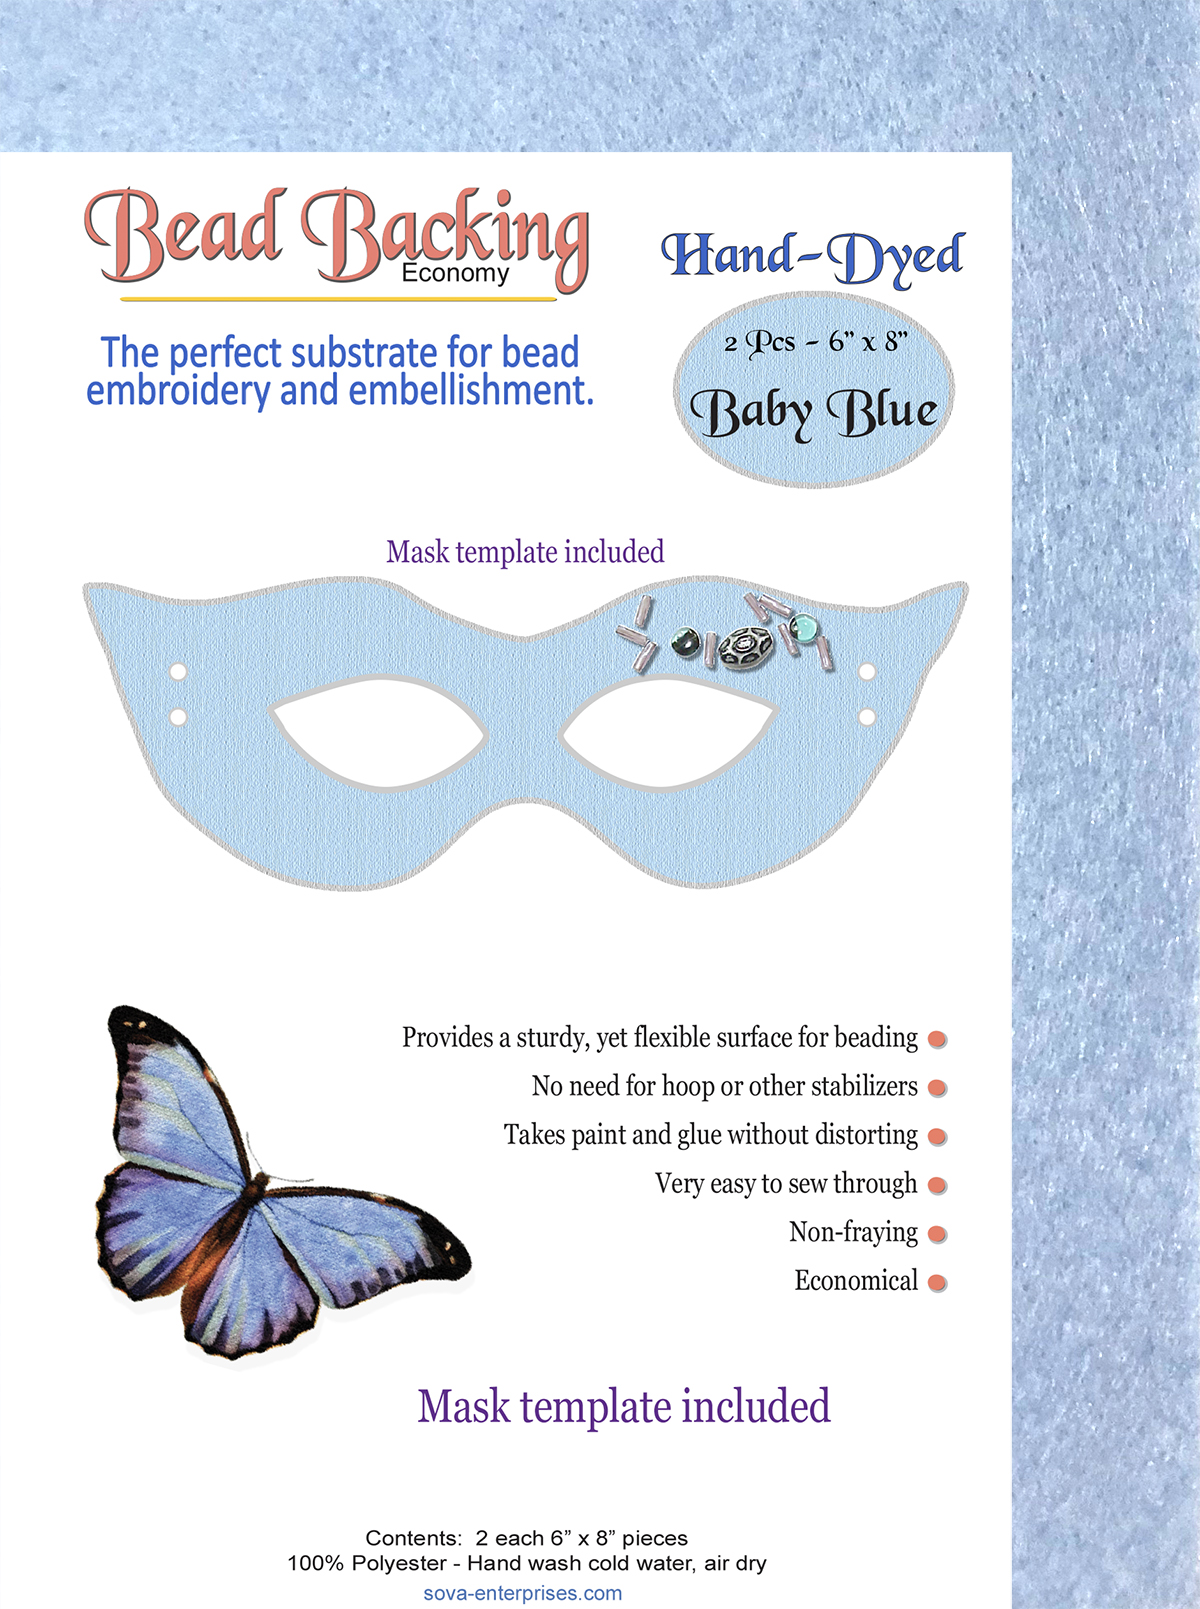 "Bead Backing Economy Foundation 6"" x 8"" Baby Blue(2)"